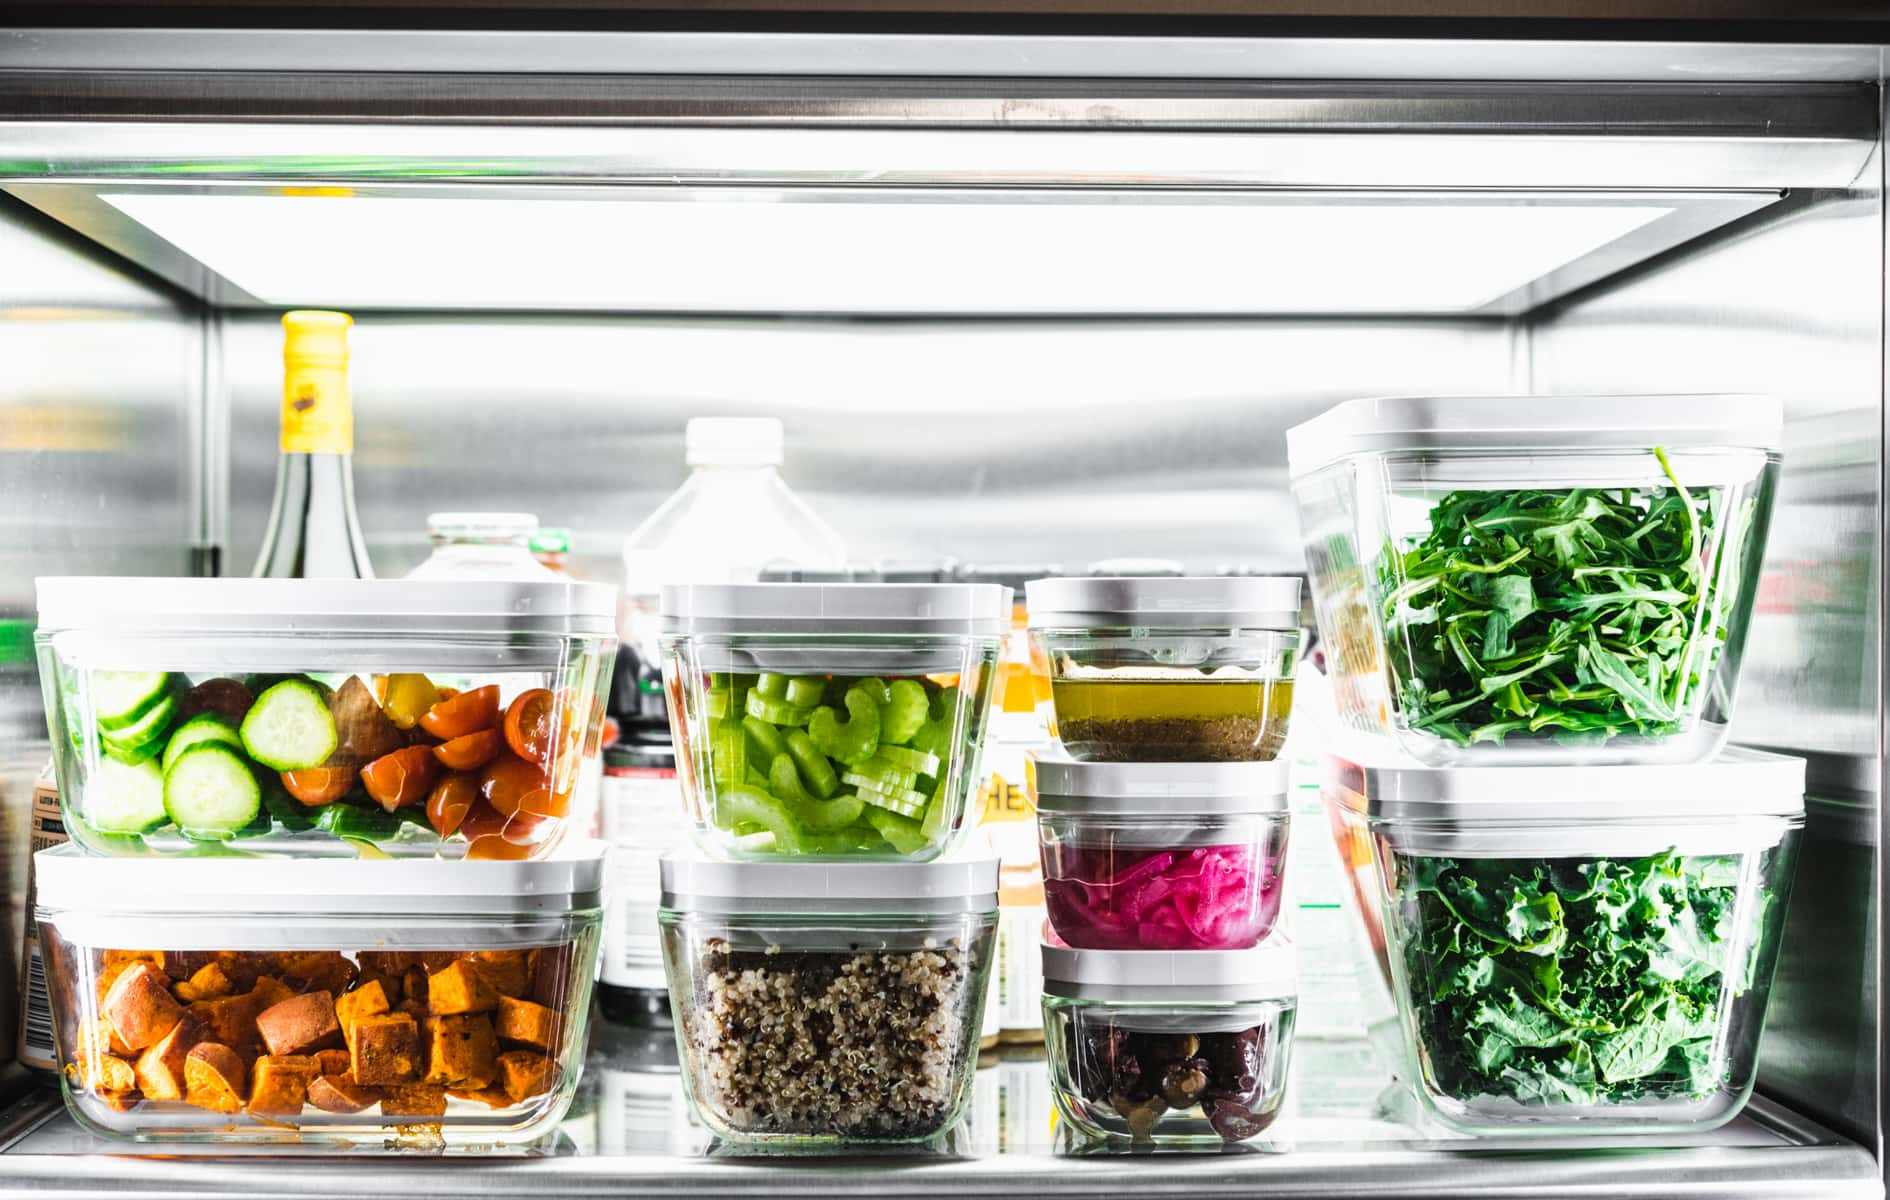 multiple meal prep containers stacked in a refrigerator filled with salad ingredients.